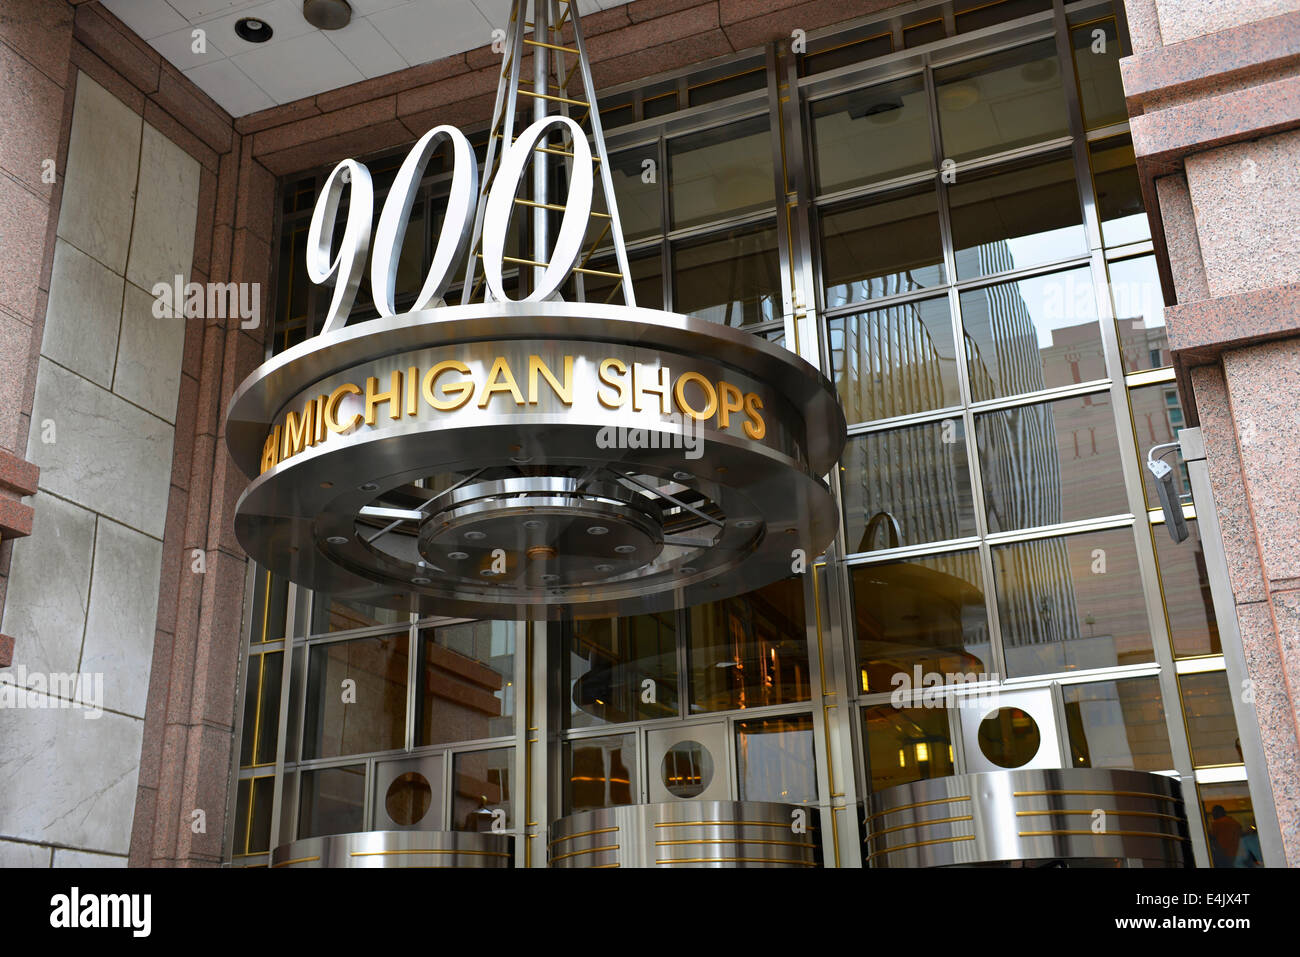 900 North Michigan Shops, sign above entrance, Shopping Mall, Chicago, Illinois - Stock Image